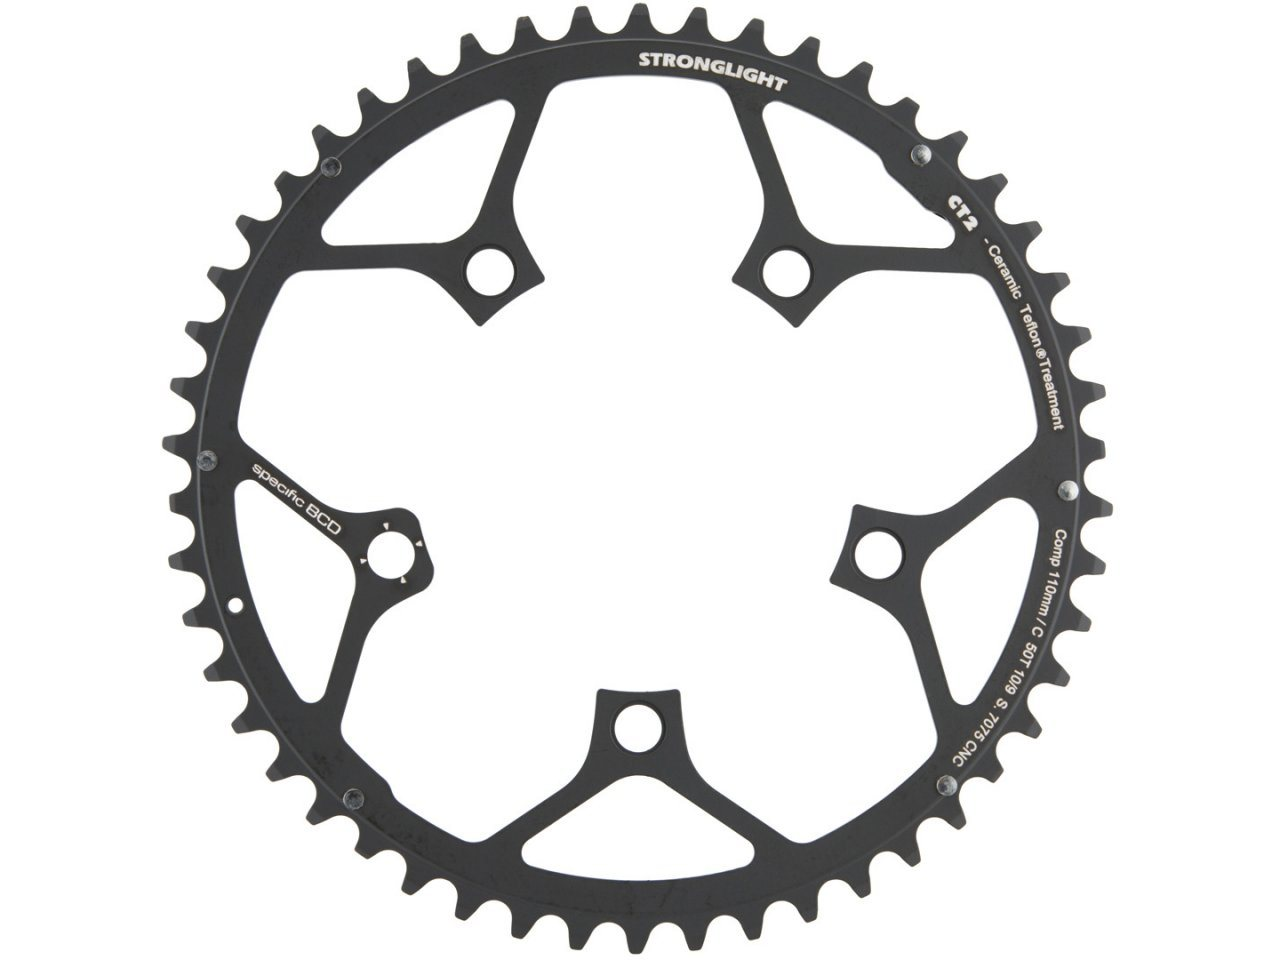 Campagnolo 10 speed CT Compact 34t Chainrings Chain rings  NEW